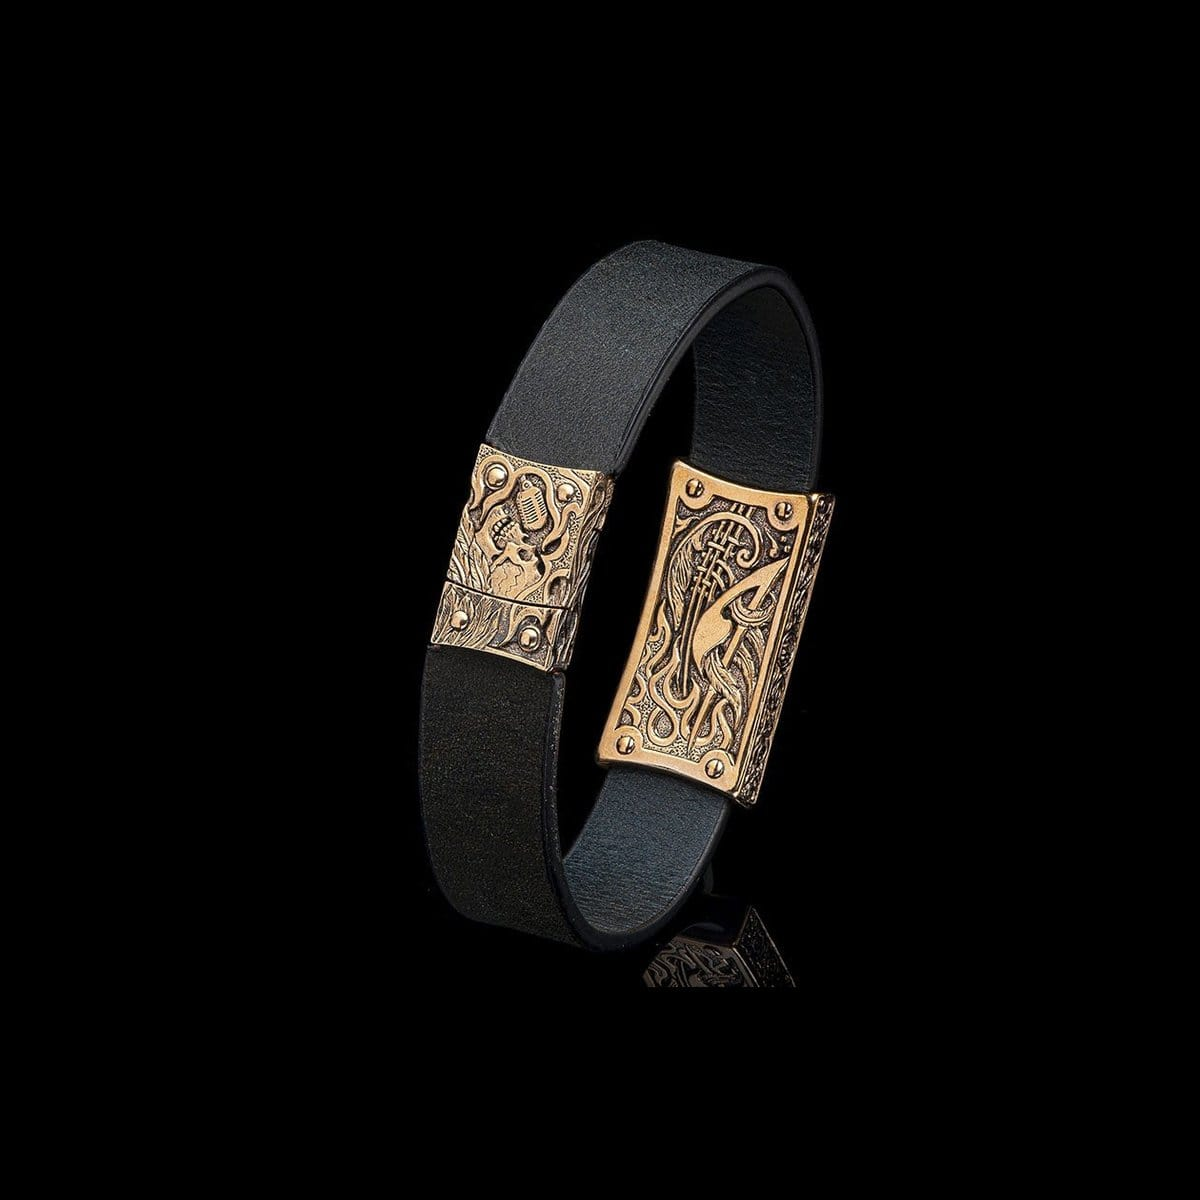 Men's La Grande Bracelet - LC192 RRBZ BLK-William Henry-Renee Taylor Gallery